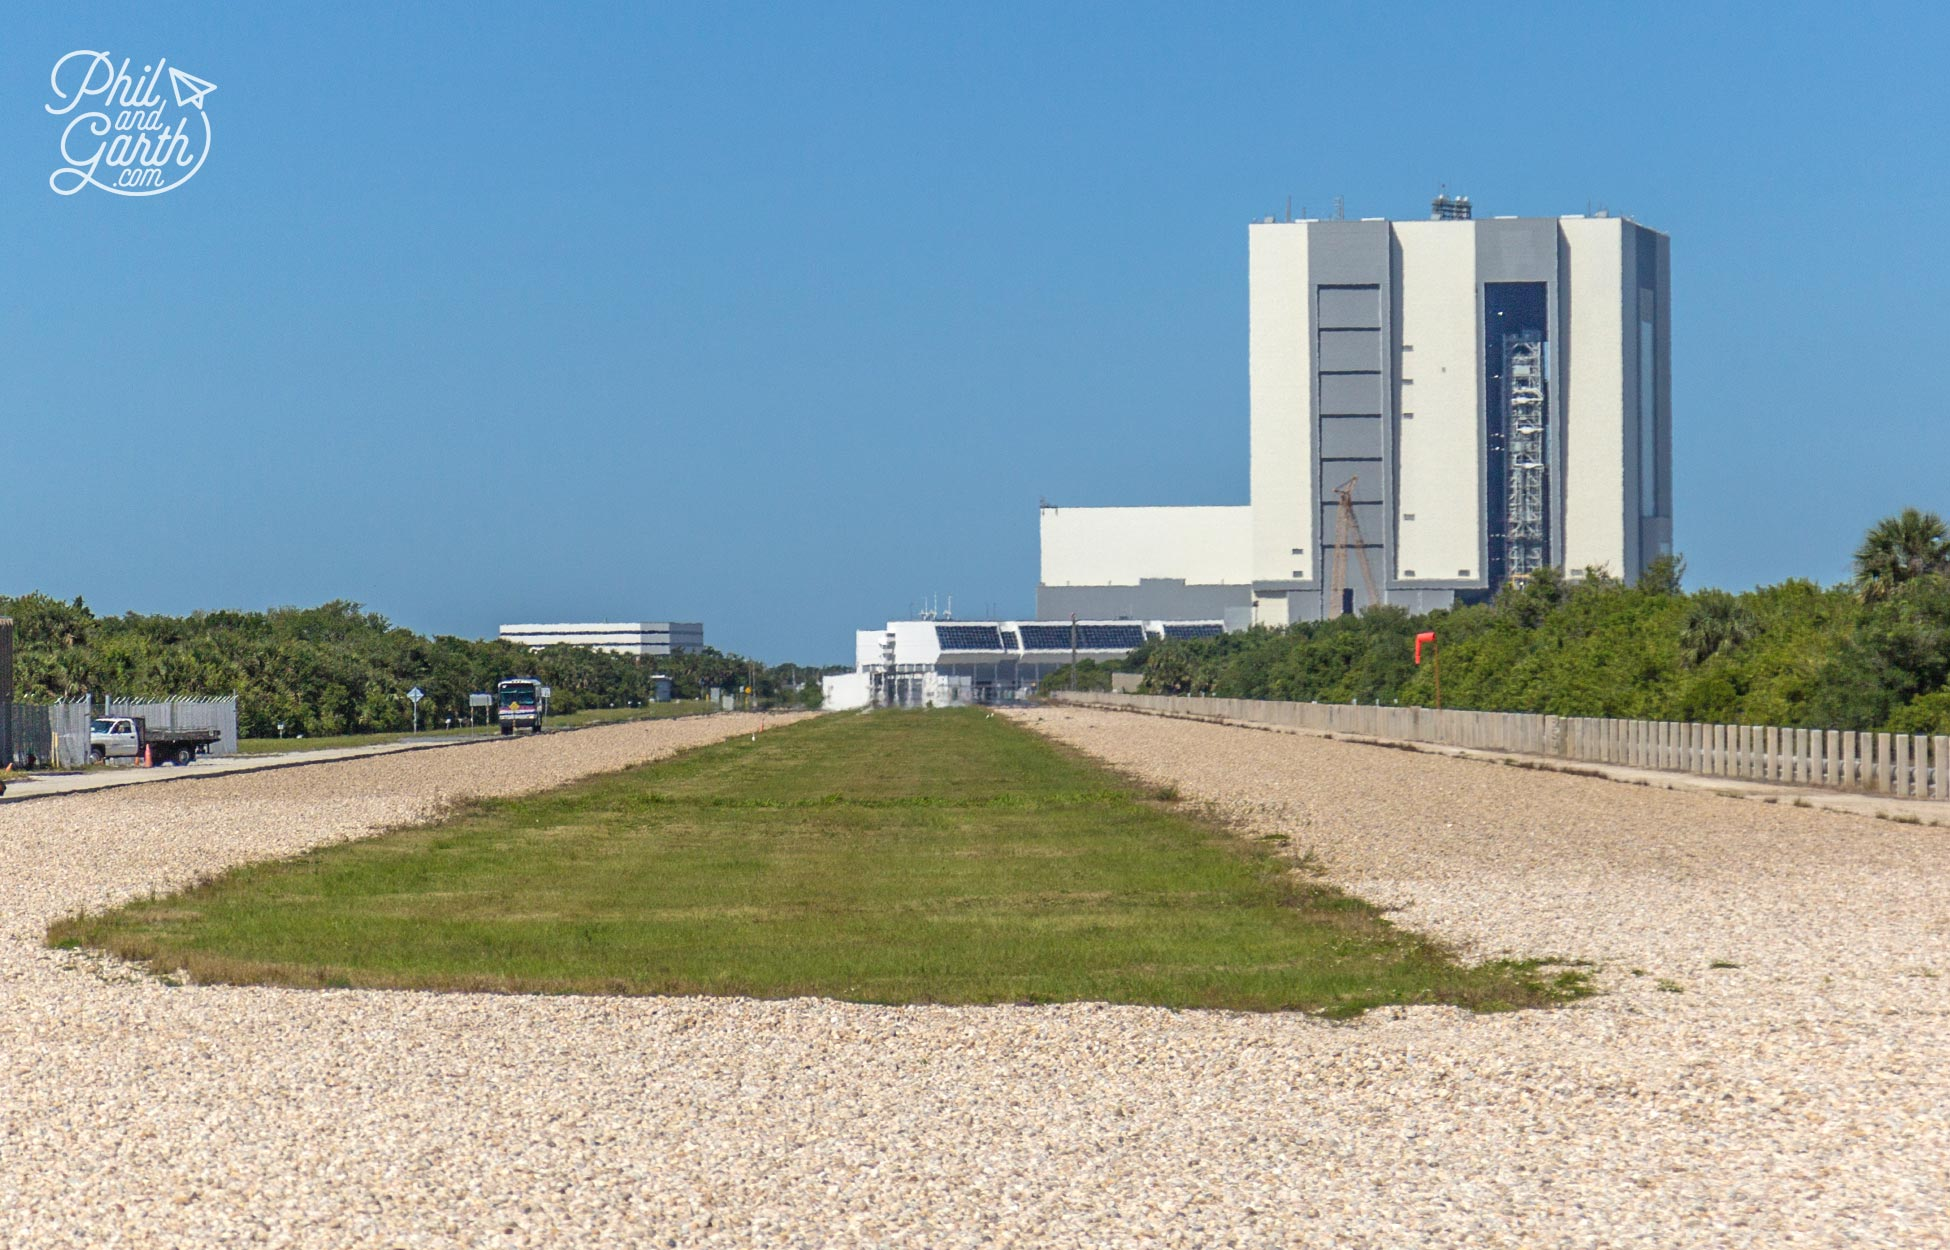 View down 'Crawlerway' which connects the Vehicle Assembly building with launch pads 39A & 39B